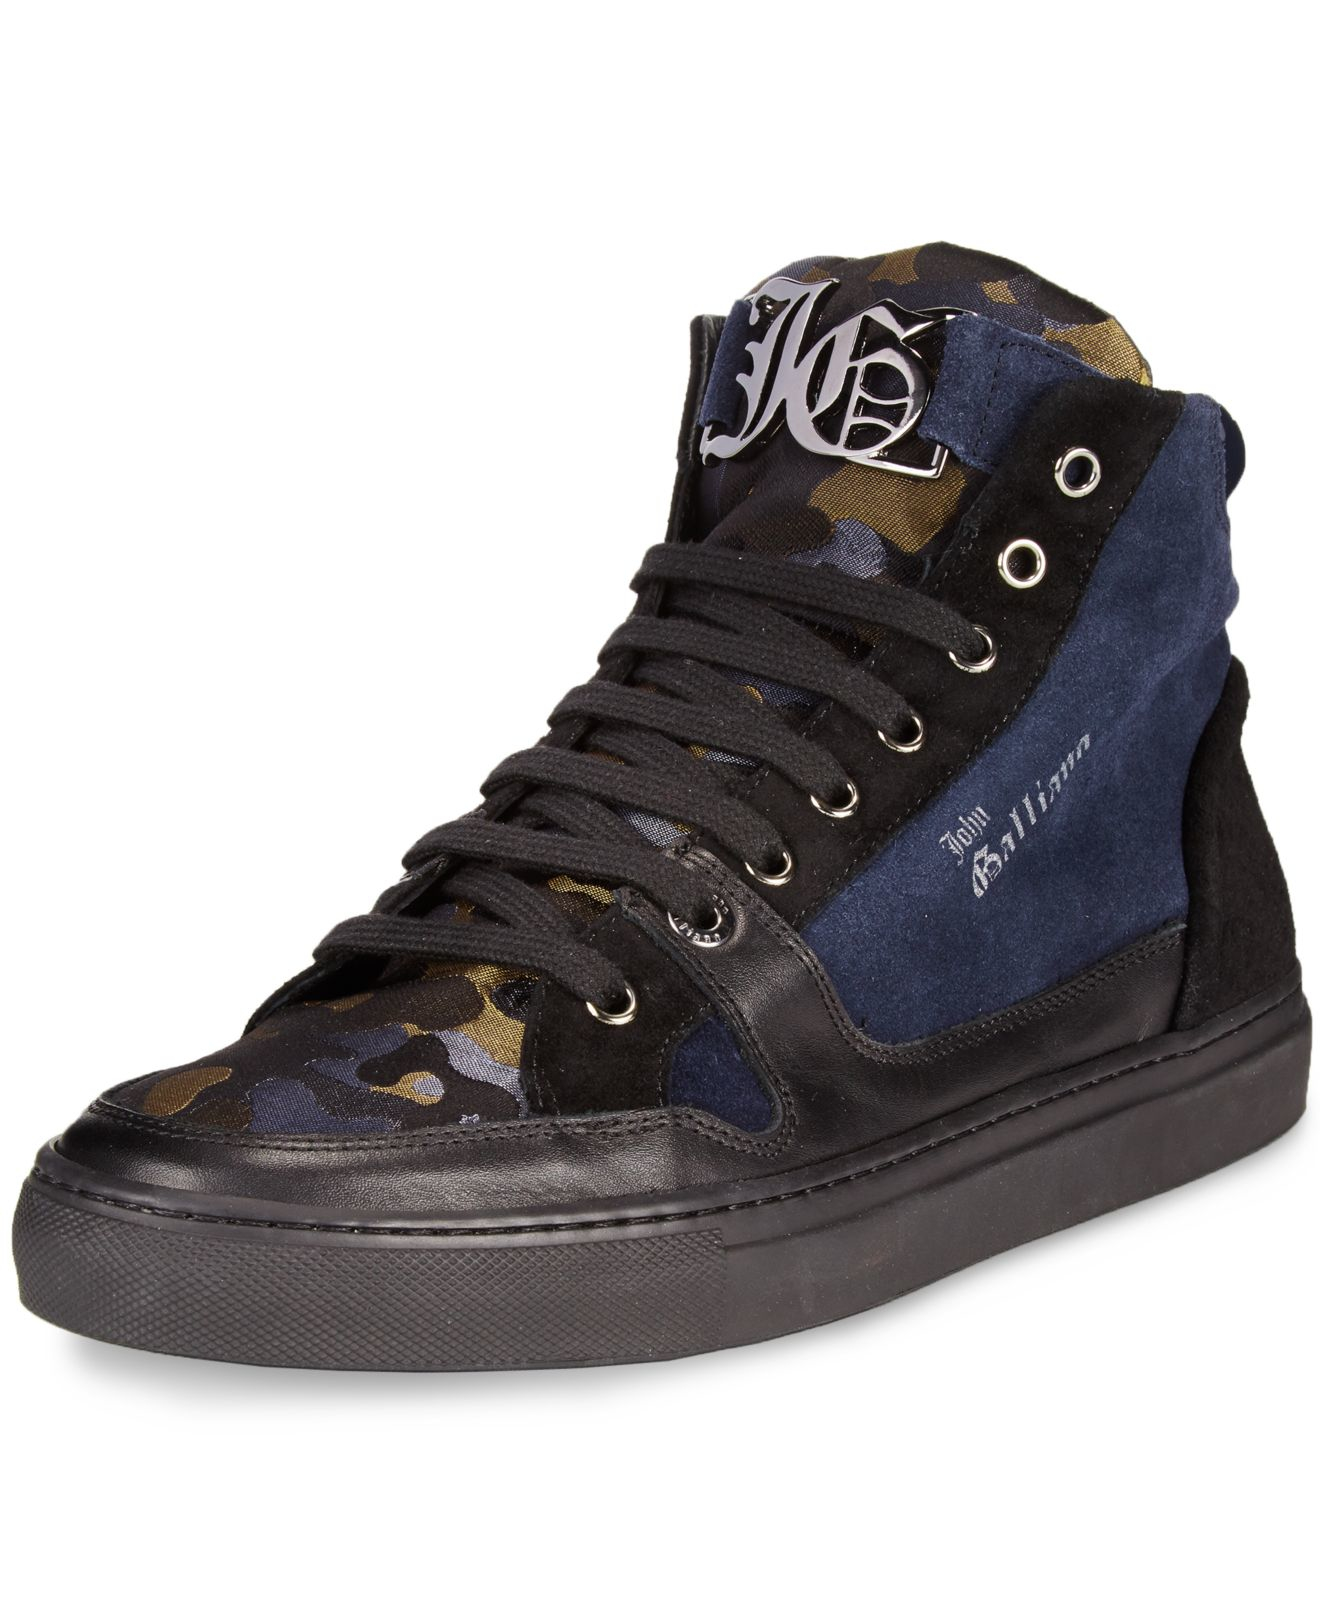 purchase cheap 68ef0 b1448 john-galliano-black-blue-camo-high-top-sneakers-black-product-0-926550965-normal.jpeg